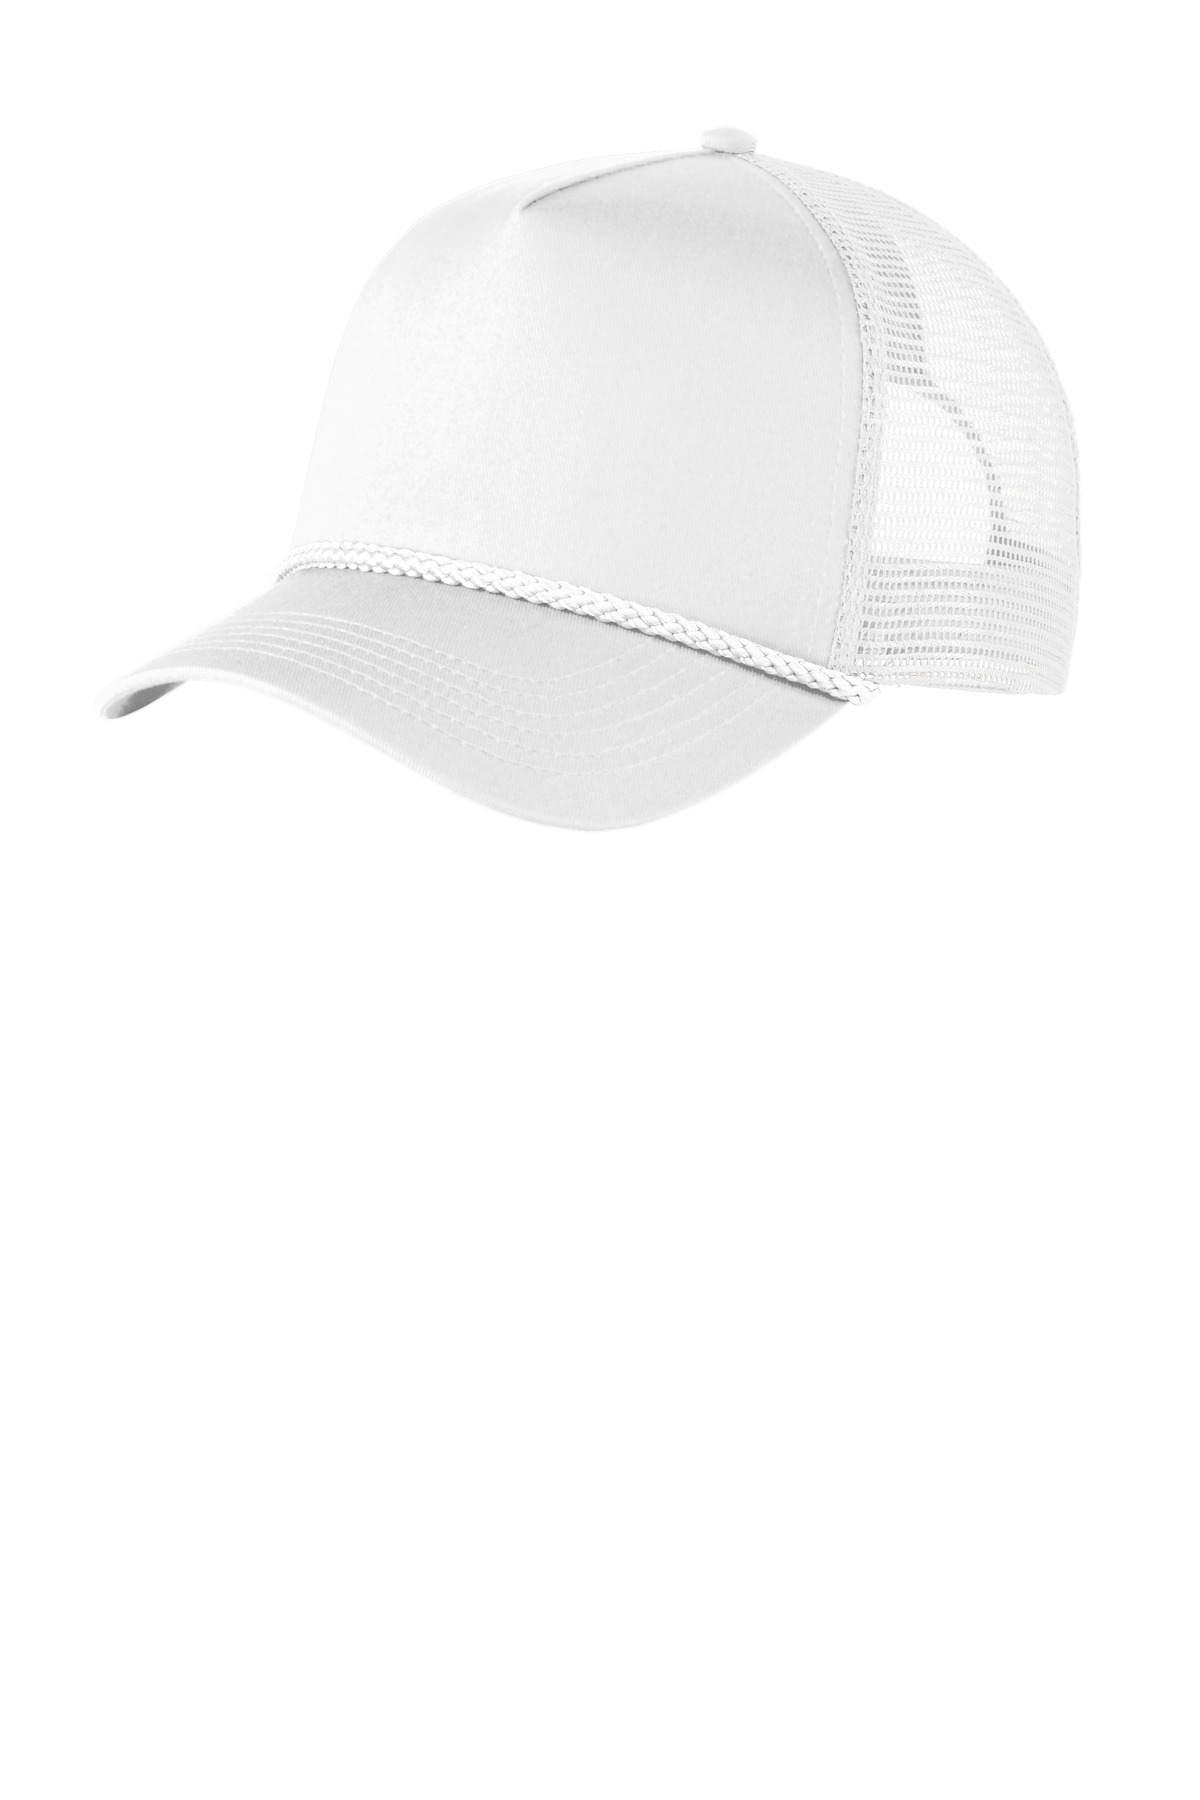 Port Authority ®  5-Panel Snapback Cap. C932 - White